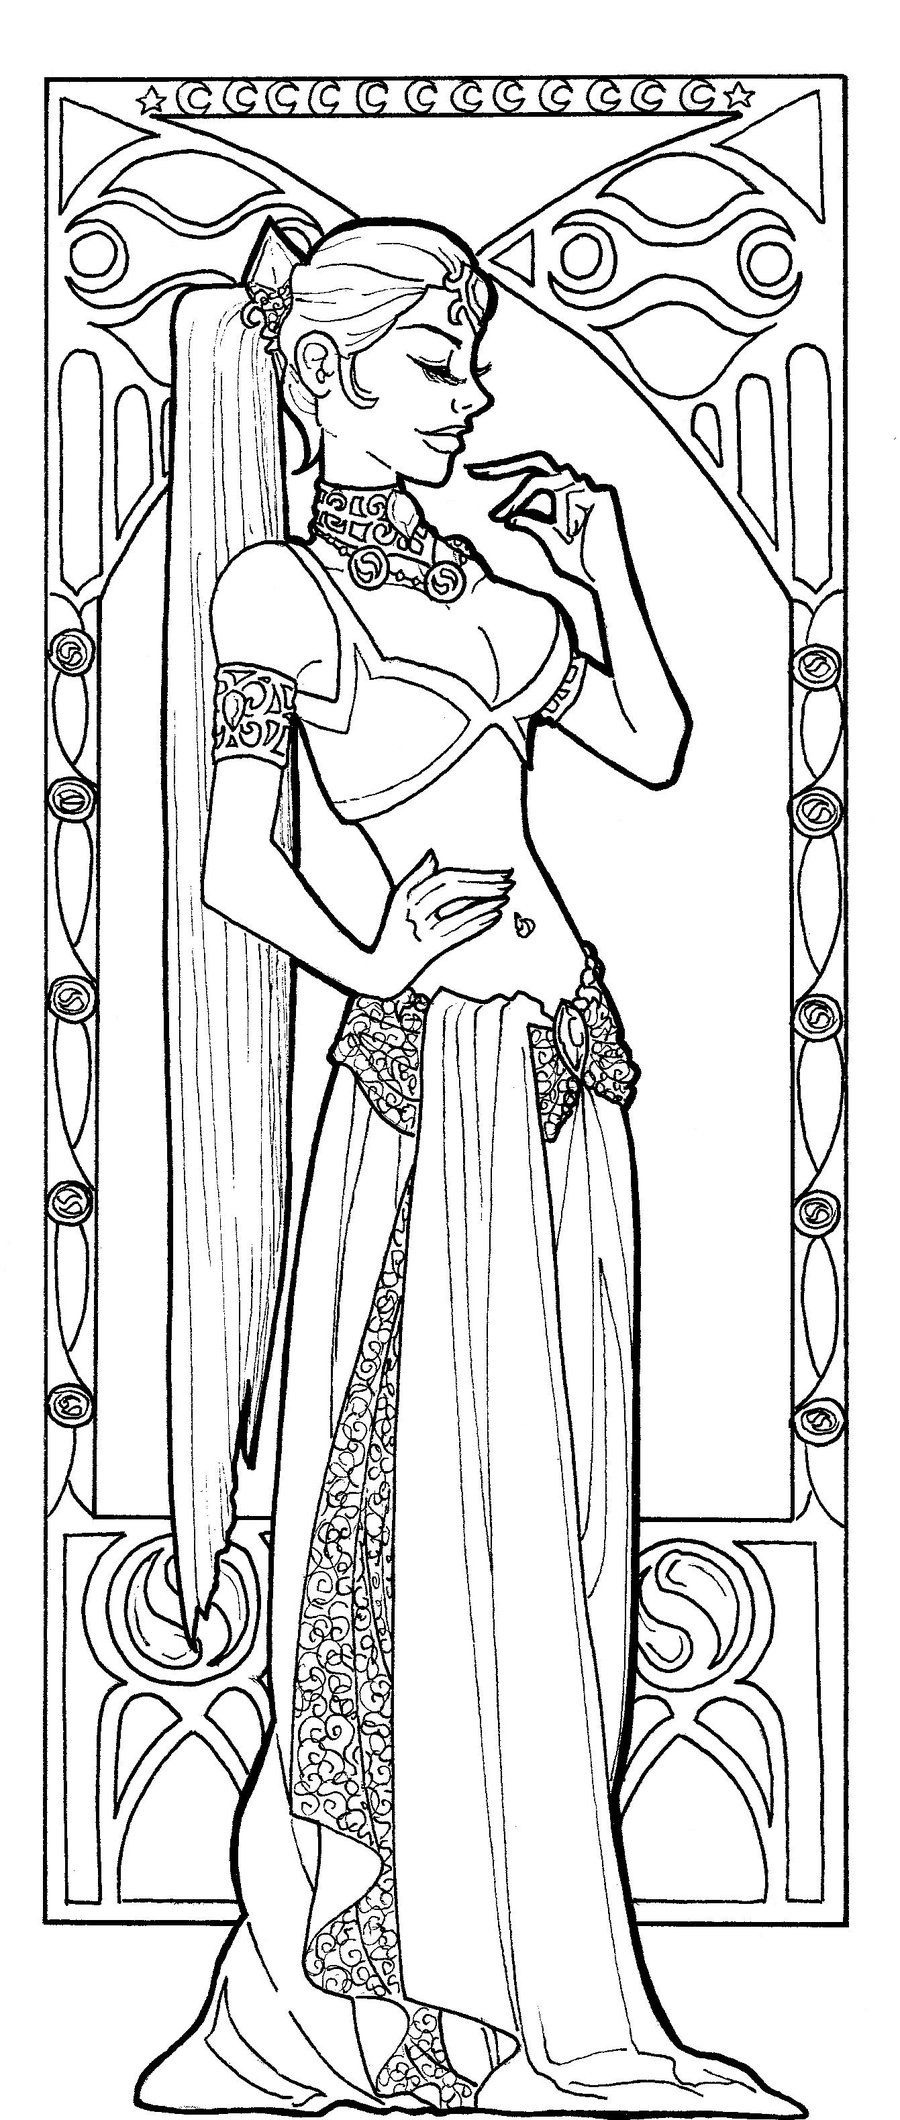 art nouveau coloring pages - photo#20